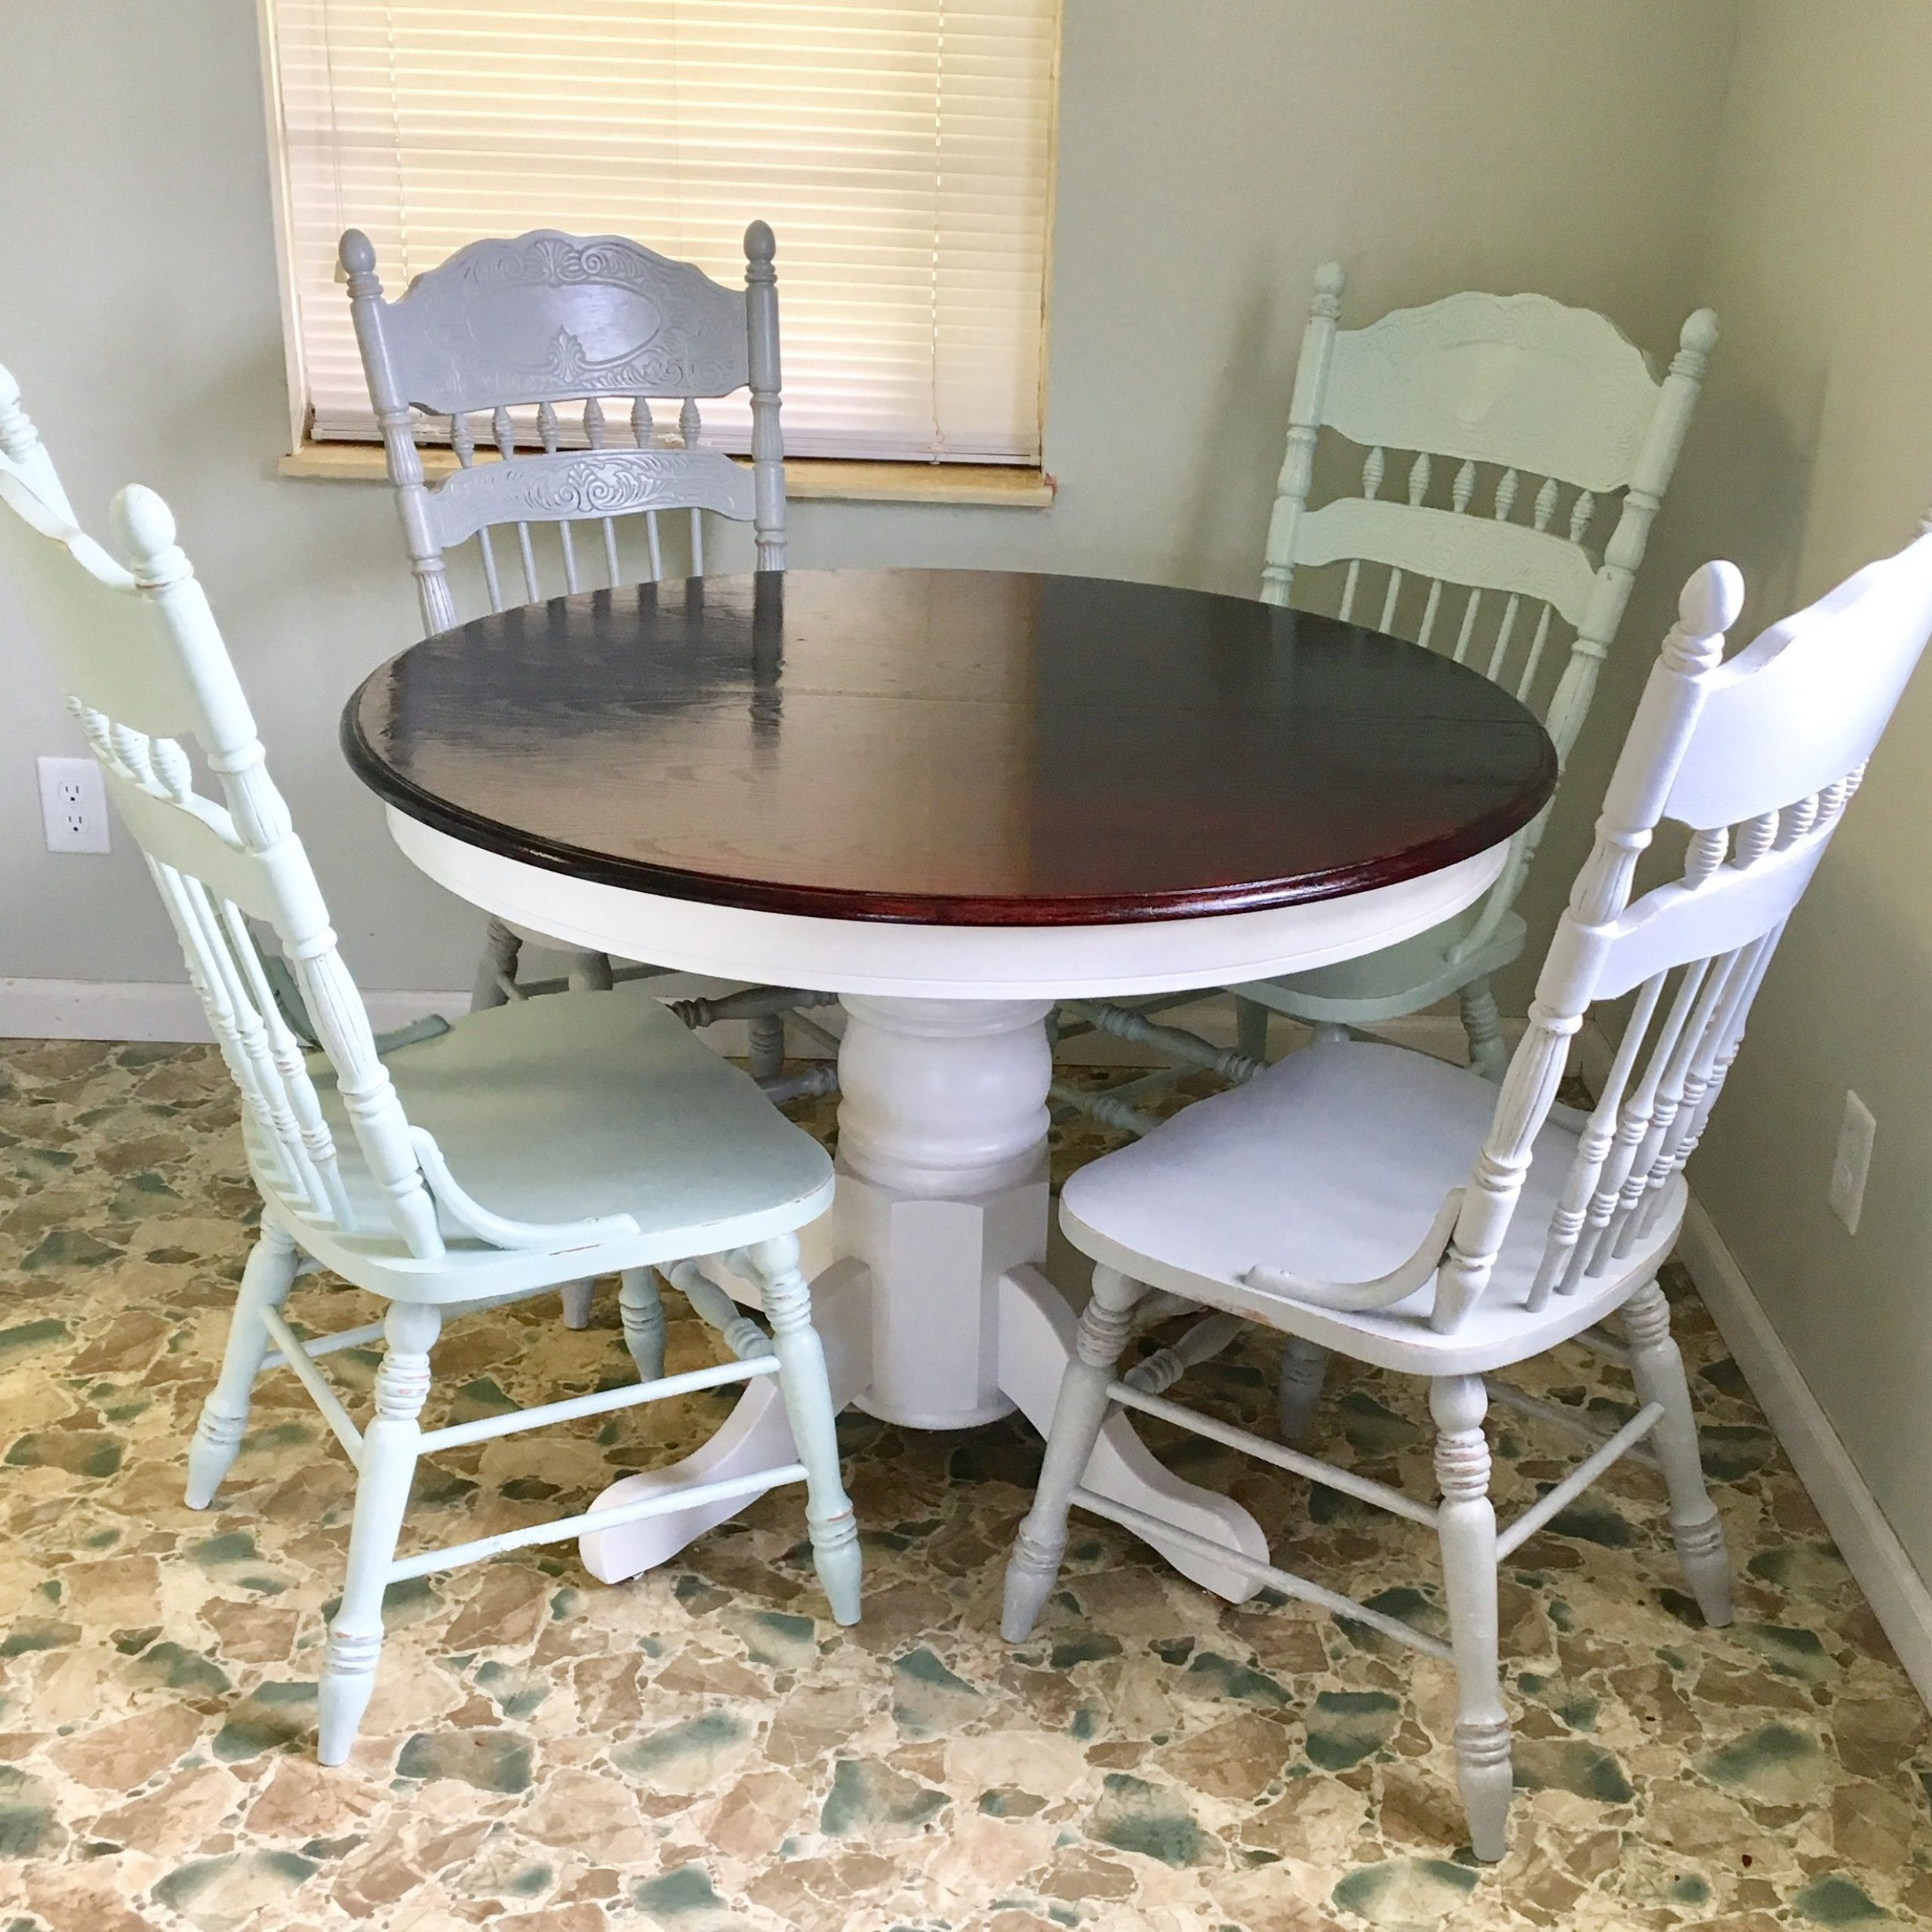 Blackened Oak Benchwright Dining Tables within 2020 Before And After. Round Oak Table Makeover/redo. Upcycled